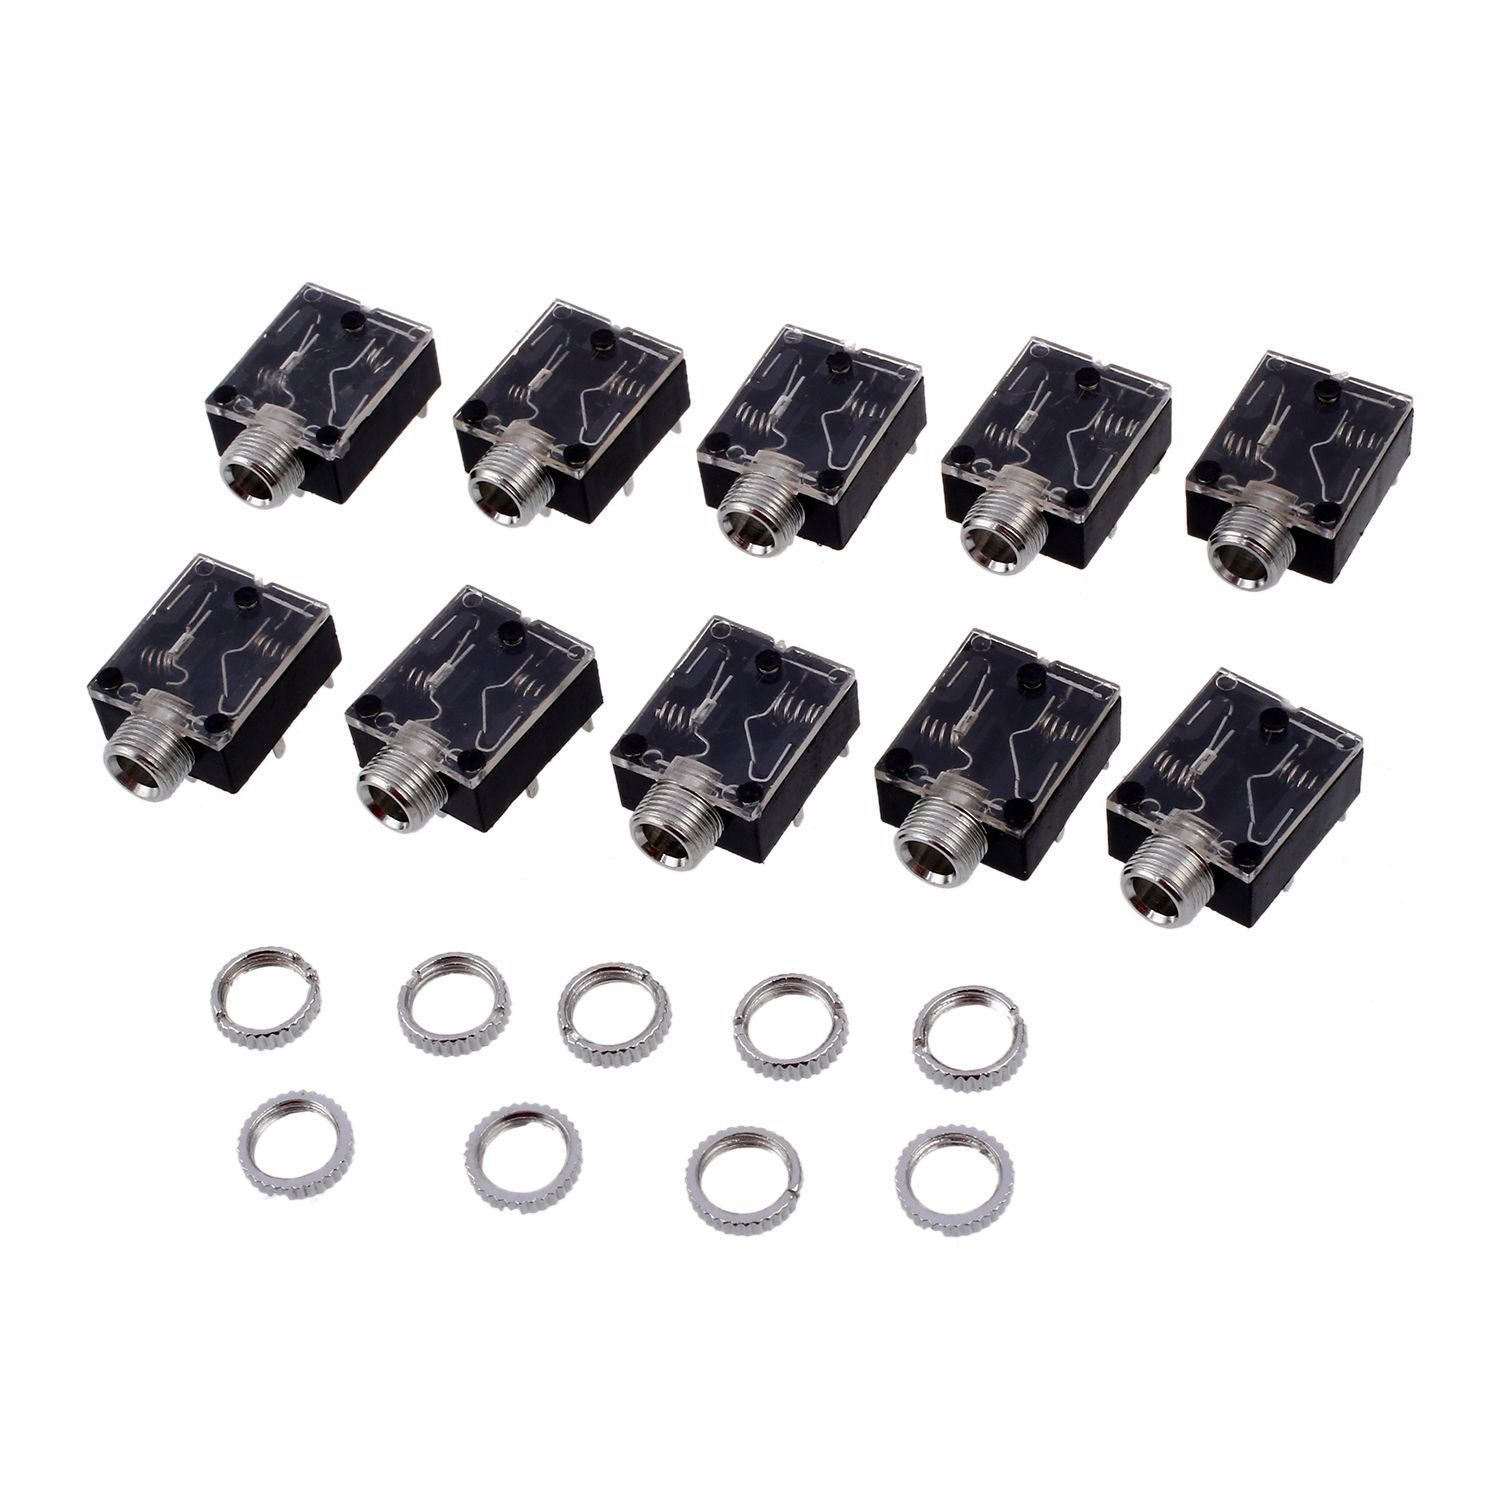 10Pcs 3.5mm Headphones Stereo Audio Socket Jack With nut 5